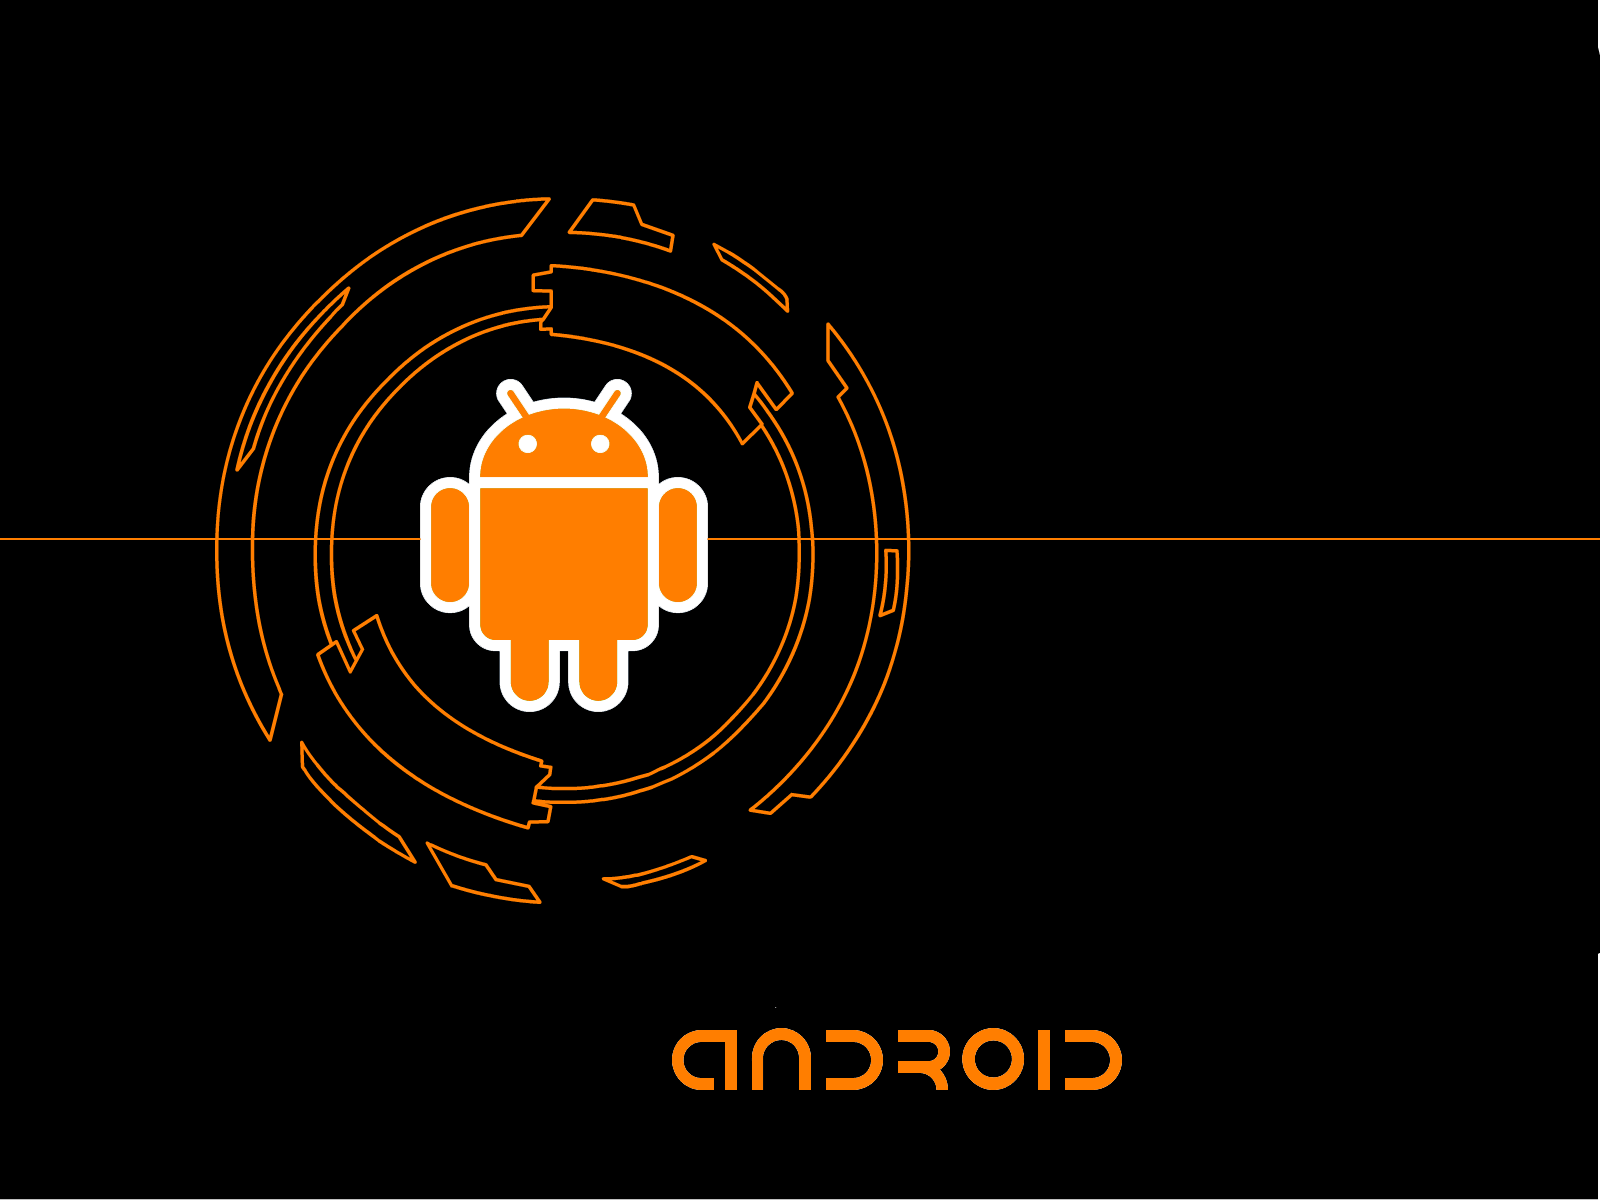 Android Dark Wallpapers - Wallpaper Cave